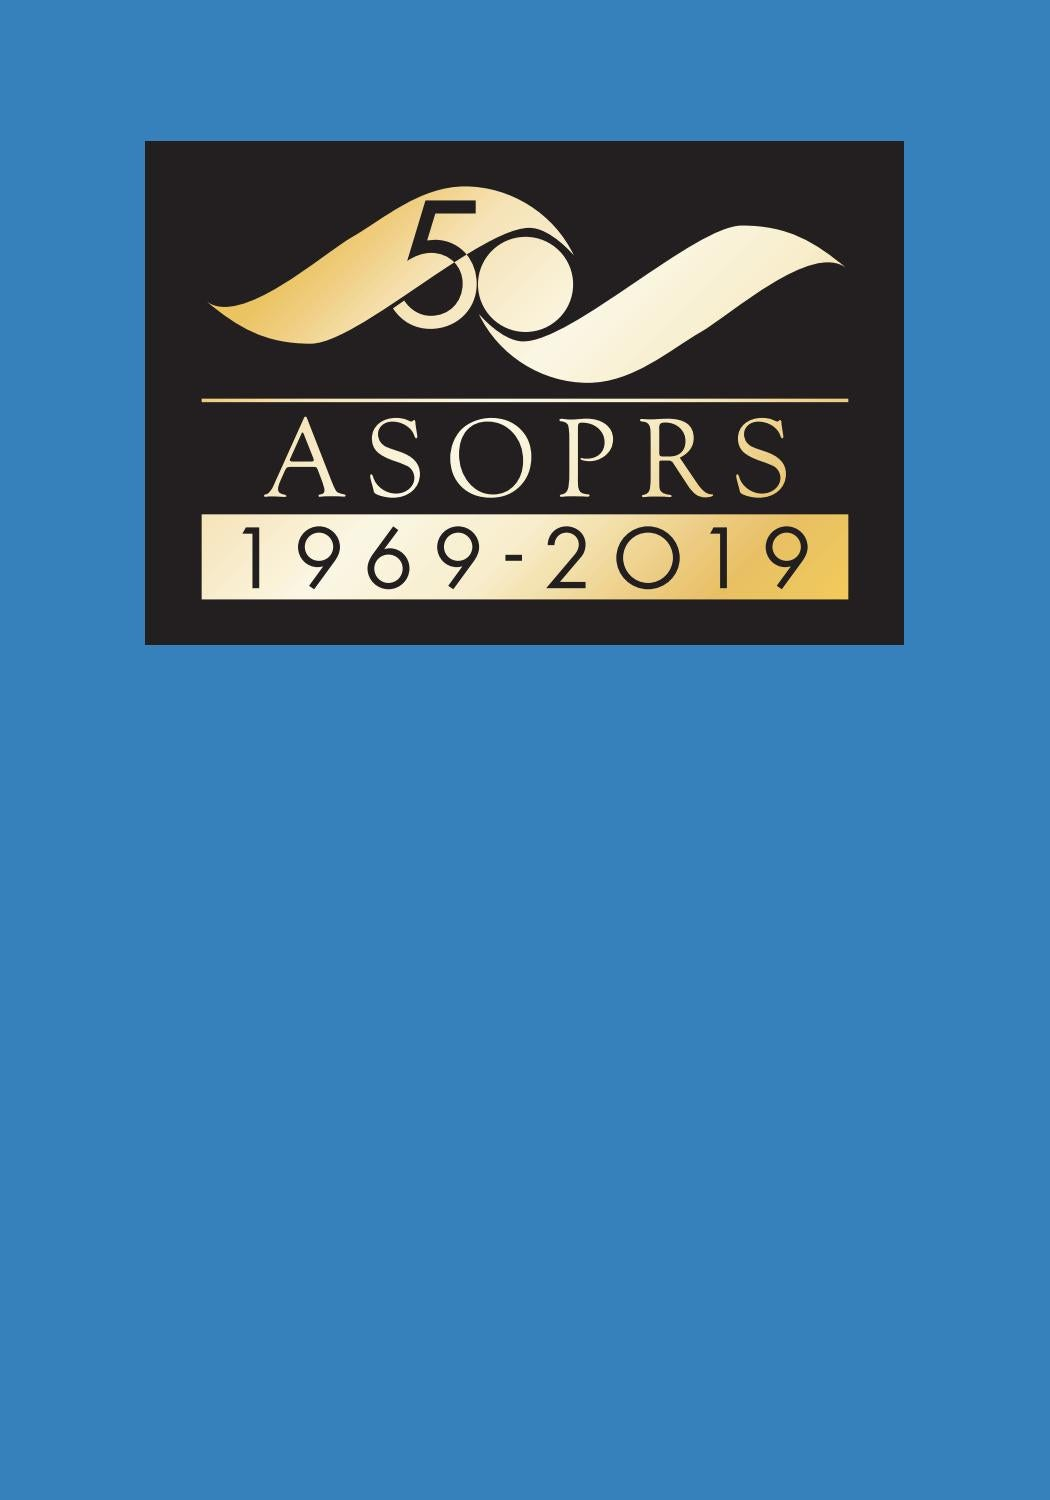 Hedendaags ASOPRS 50th Anniversary by NEXT Precision Marketing - issuu FT-86